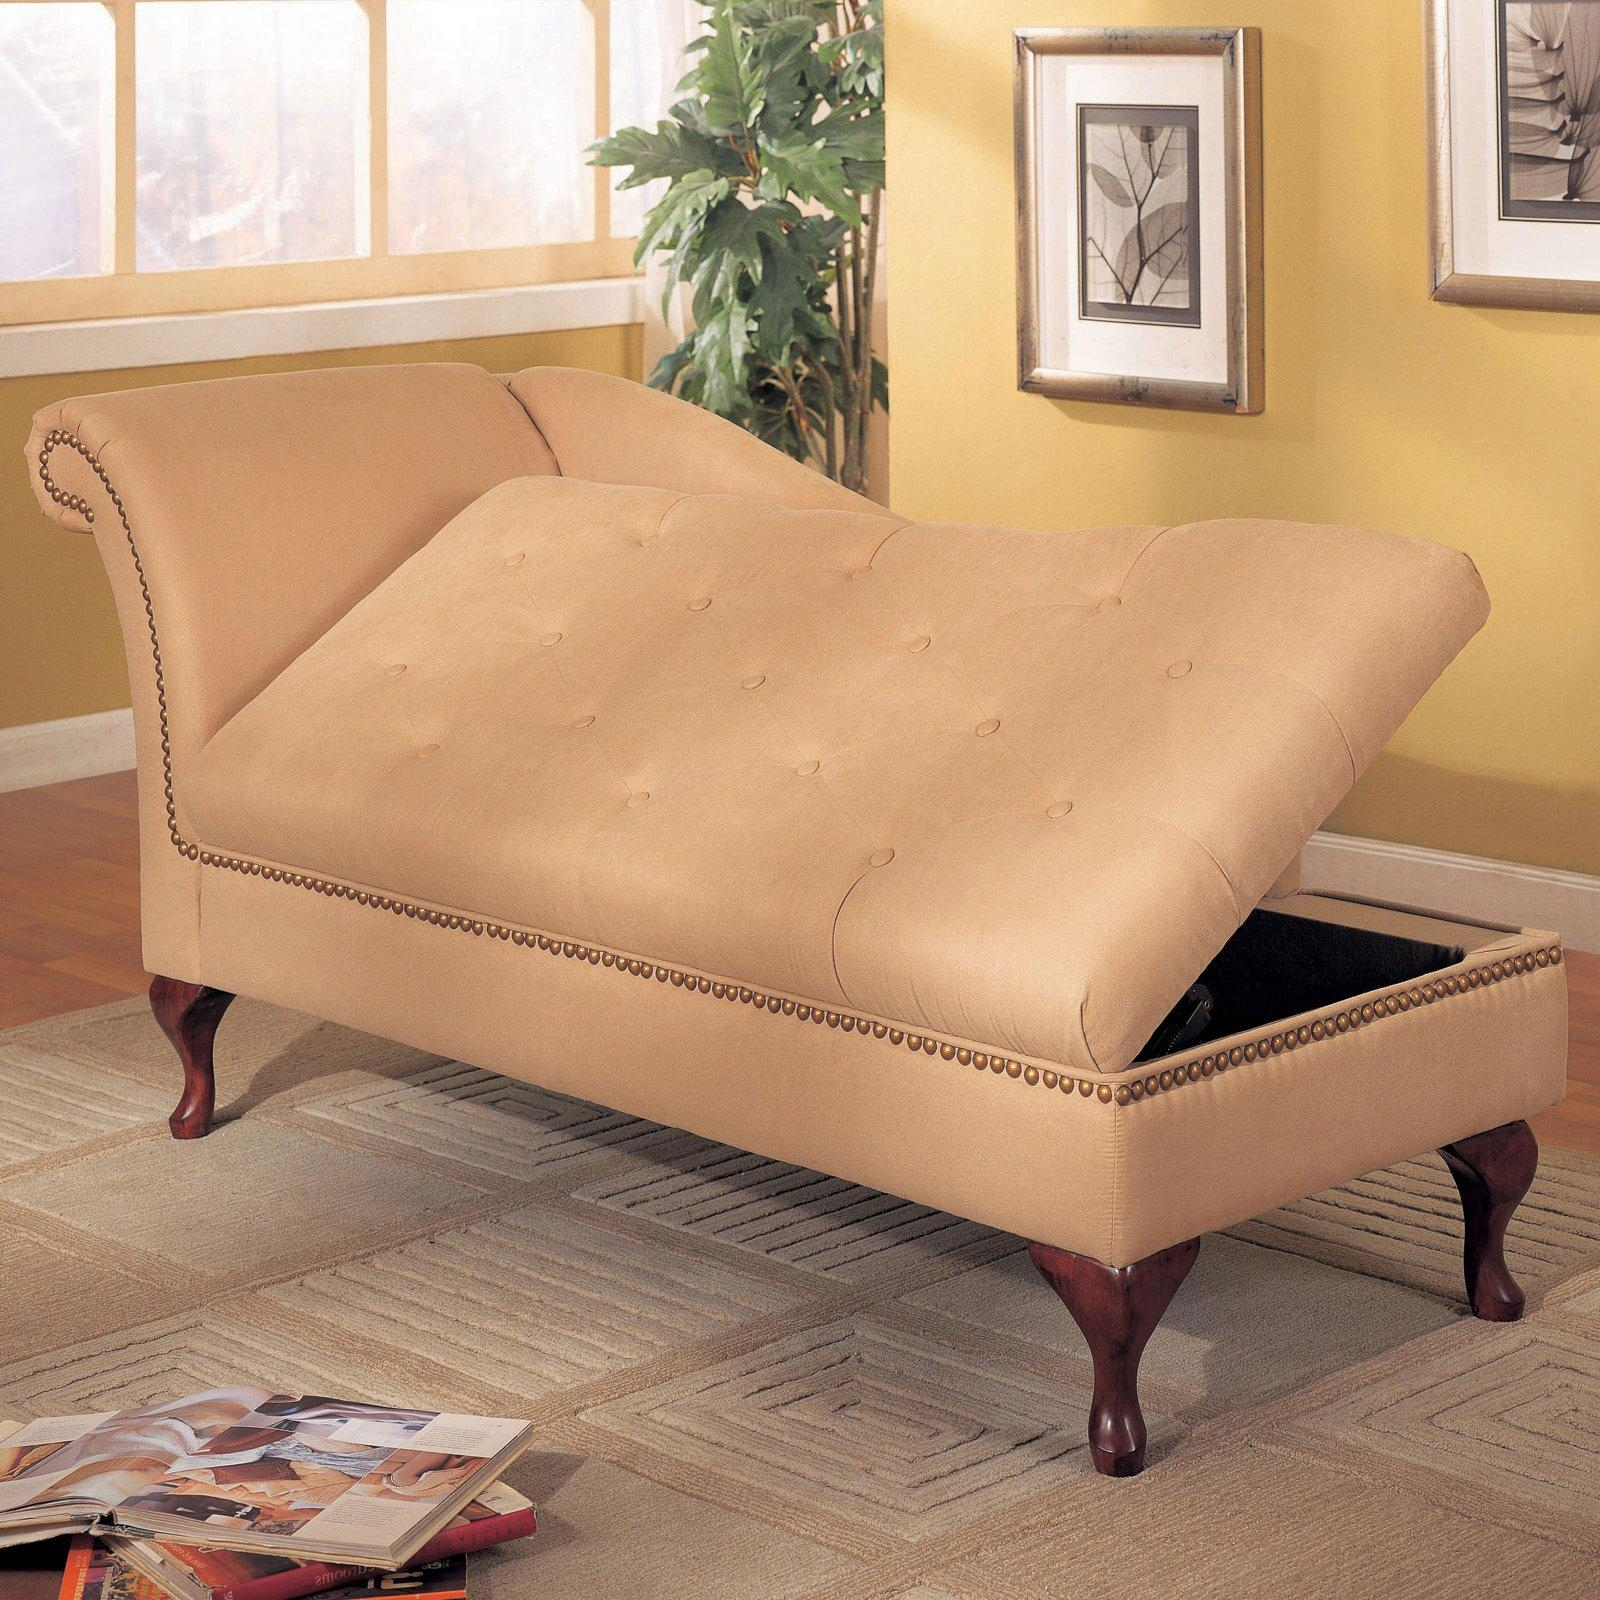 Indoor Double Chaise Lounge Chair Masata Design : The History Of In Most Current Indoor Double Chaises (View 13 of 15)